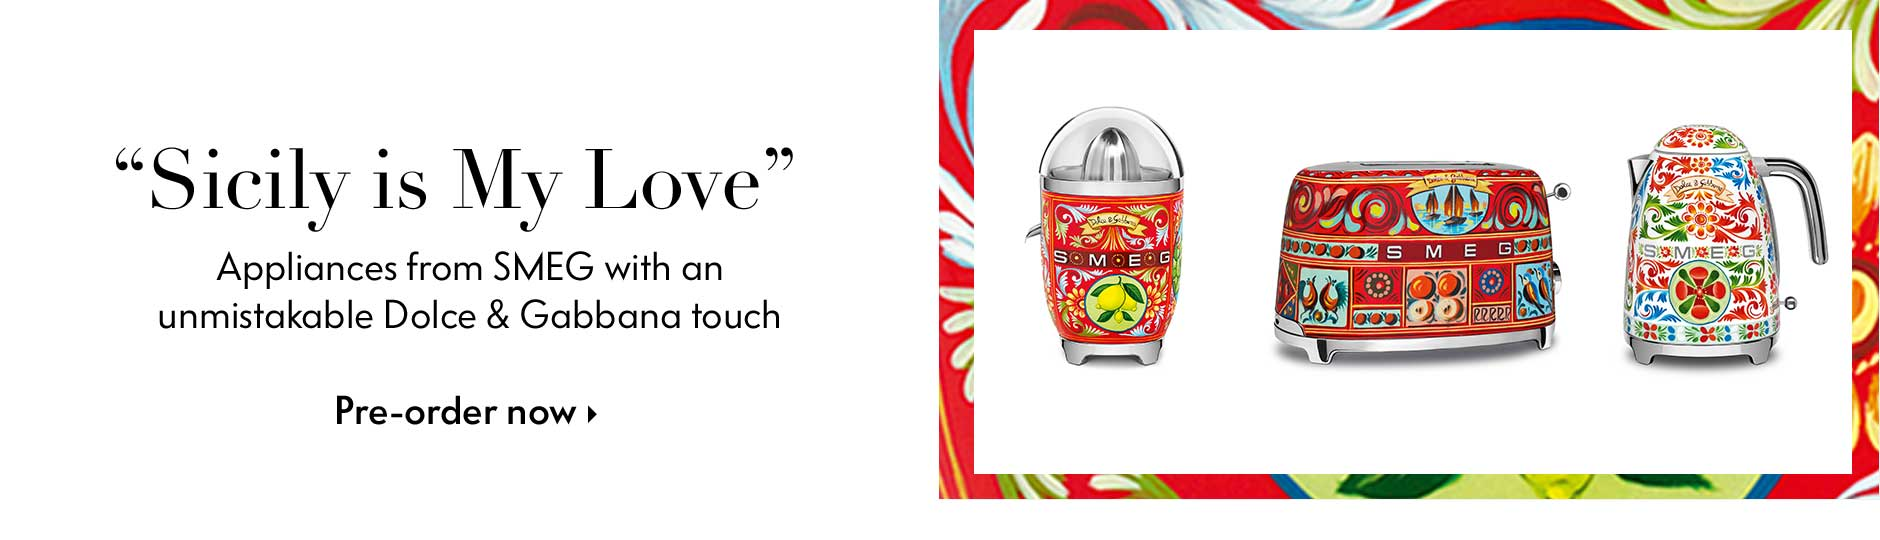 Sicily is My Love - Appliances from SMEG with an unmistakable Dolce & Gabbana touch